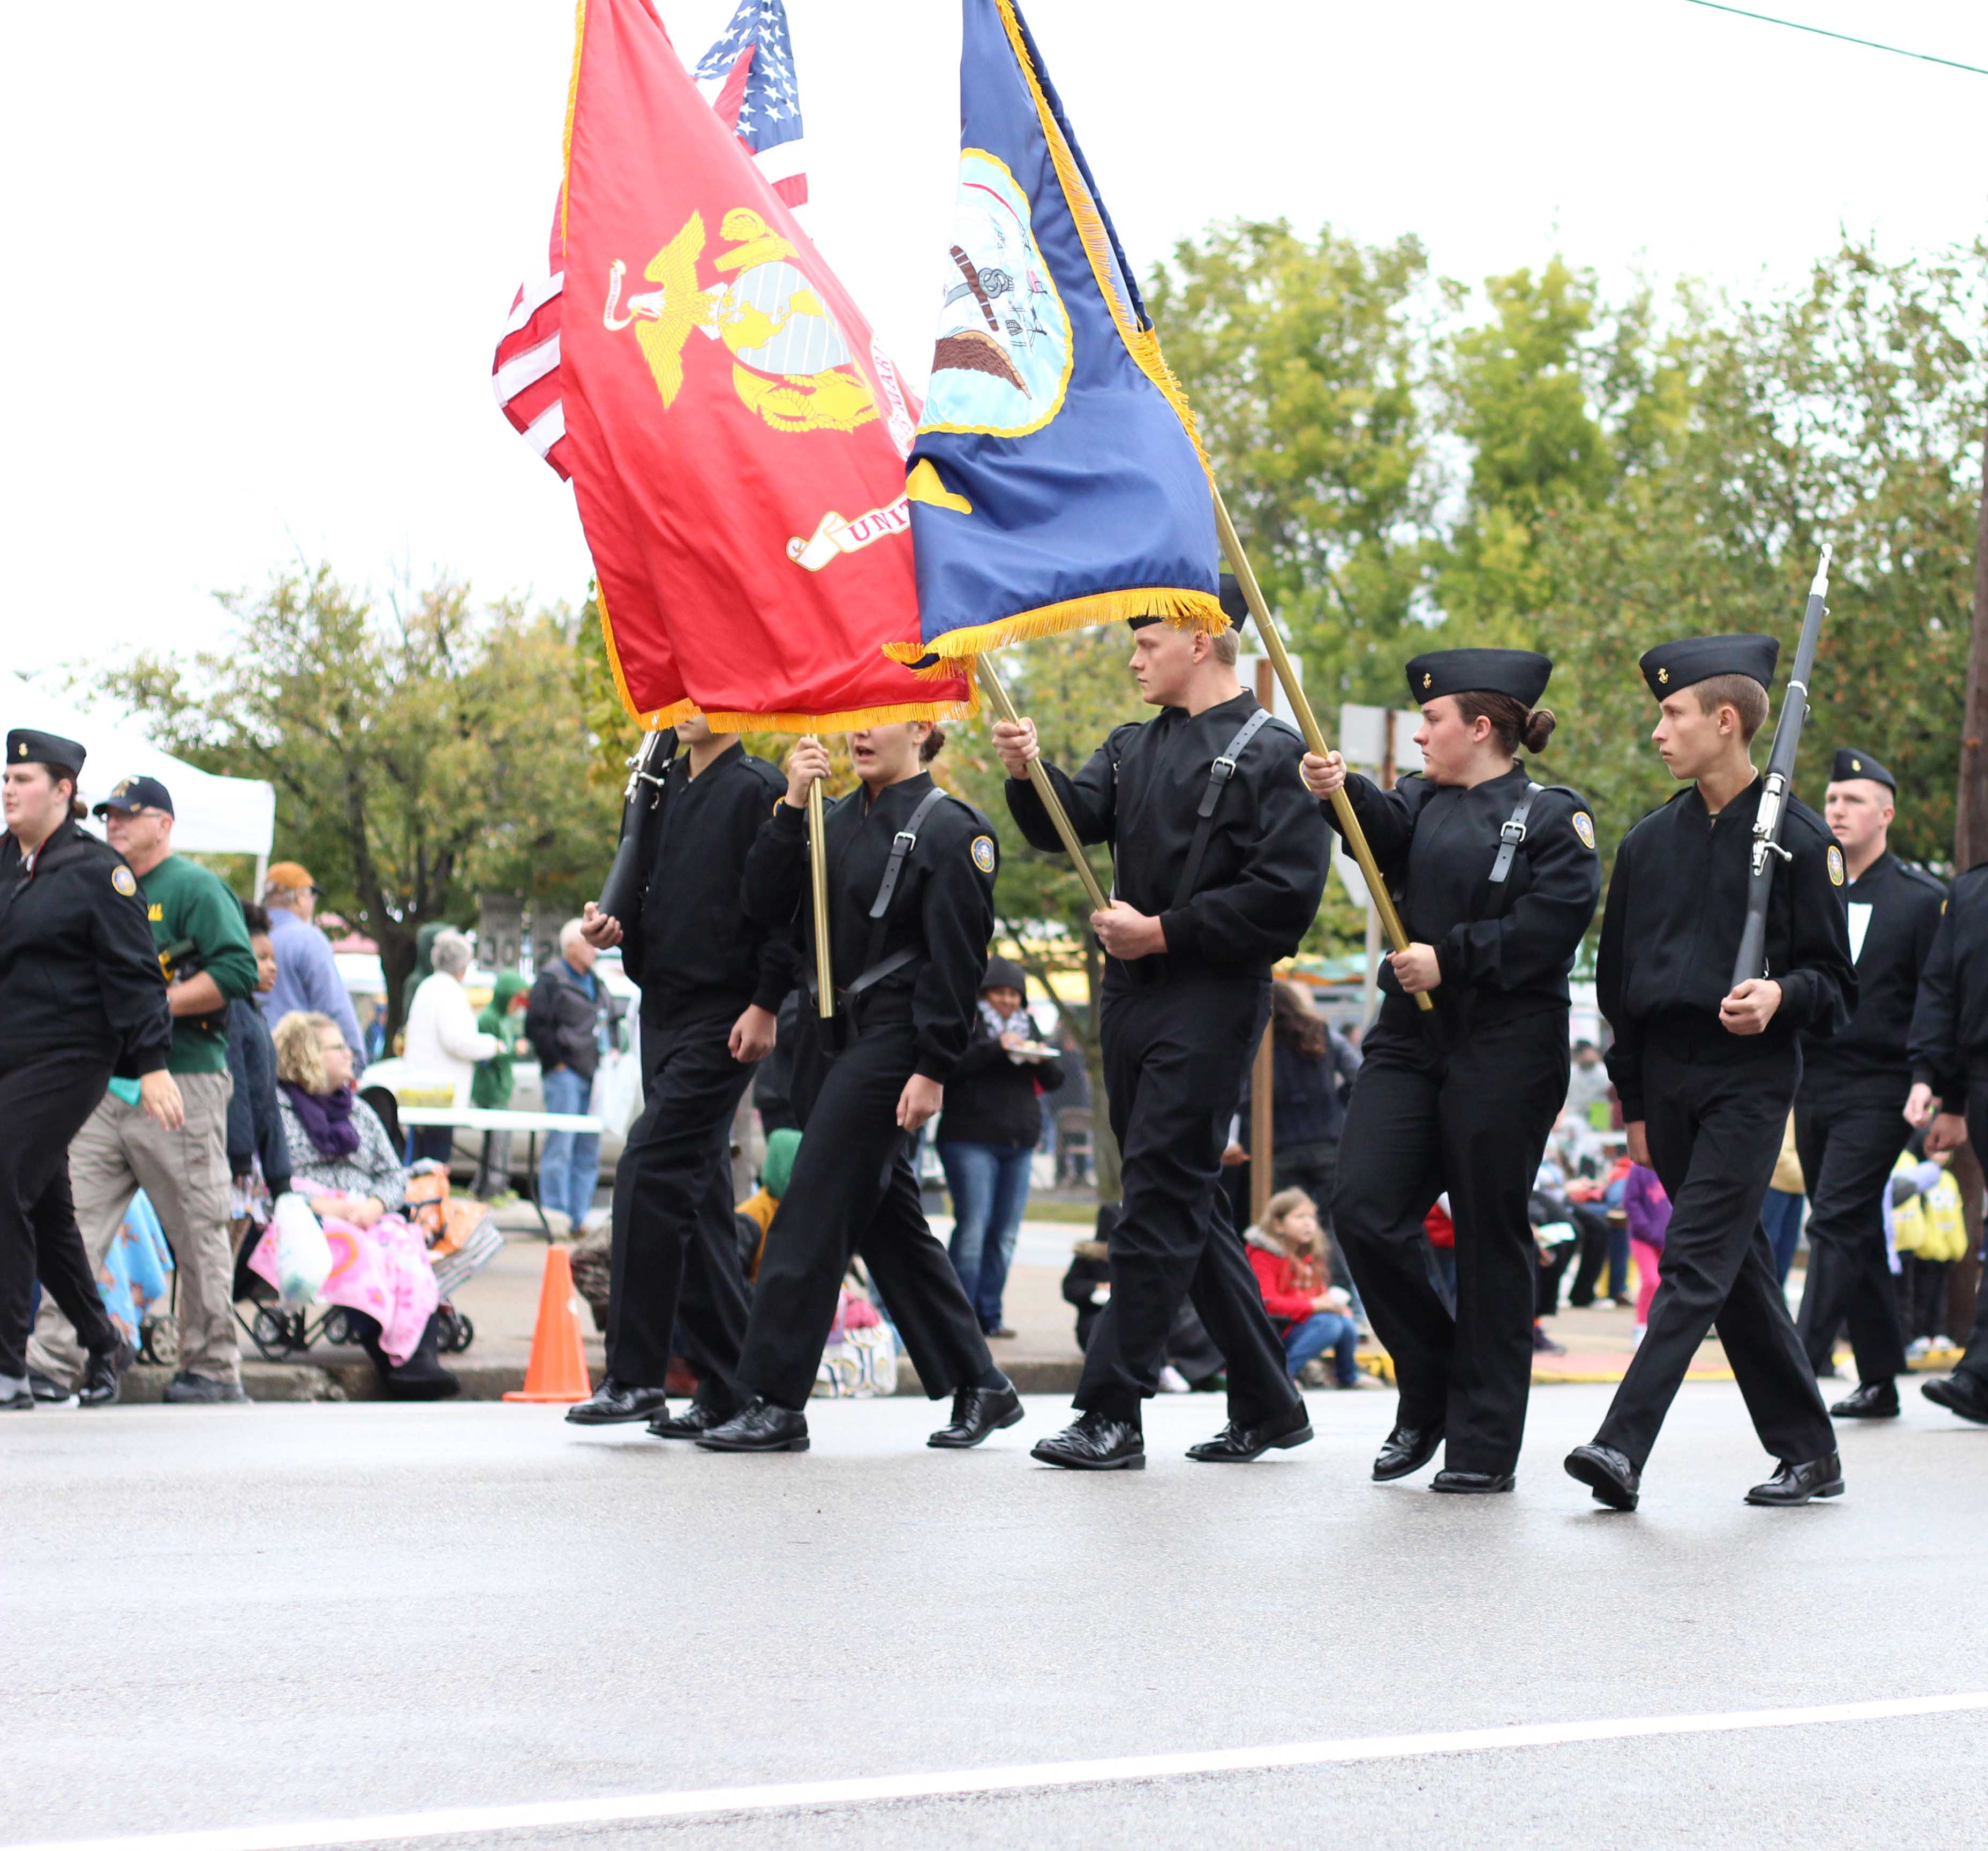 +Local+high+schools%2C+like+Floyd+Central+and+New+Albany+High+School%2C+had+their+NJROTC+programs+march+in+the+parade.+The+Floyd+Central+NJROTC+program+has+been+in+every+Harvest+Homecoming+Parade.+